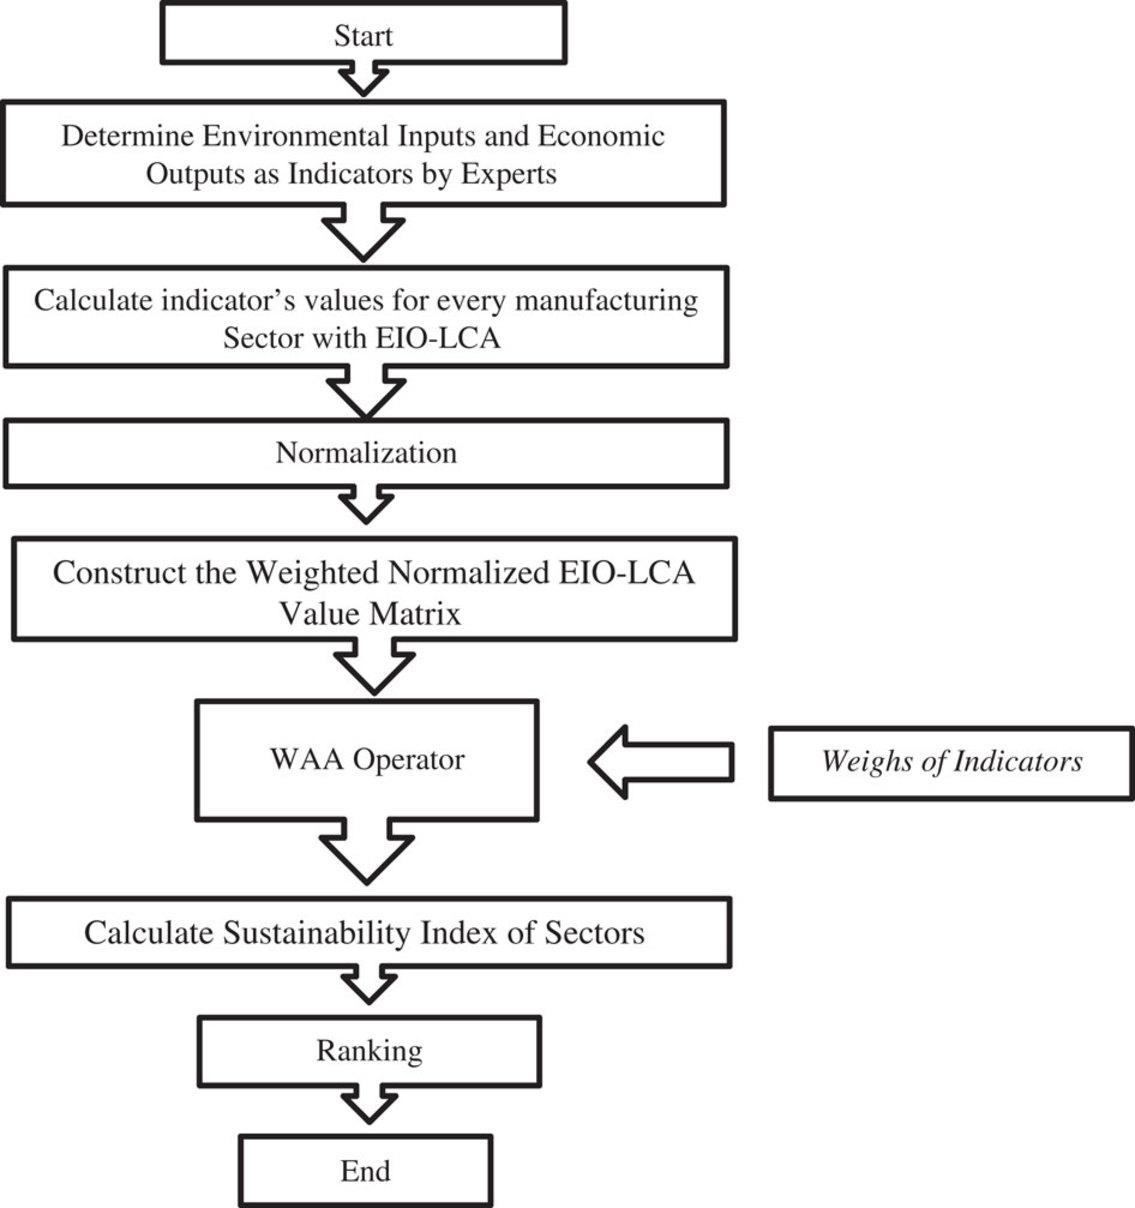 Integrating expert weighting and multi-criteria decision